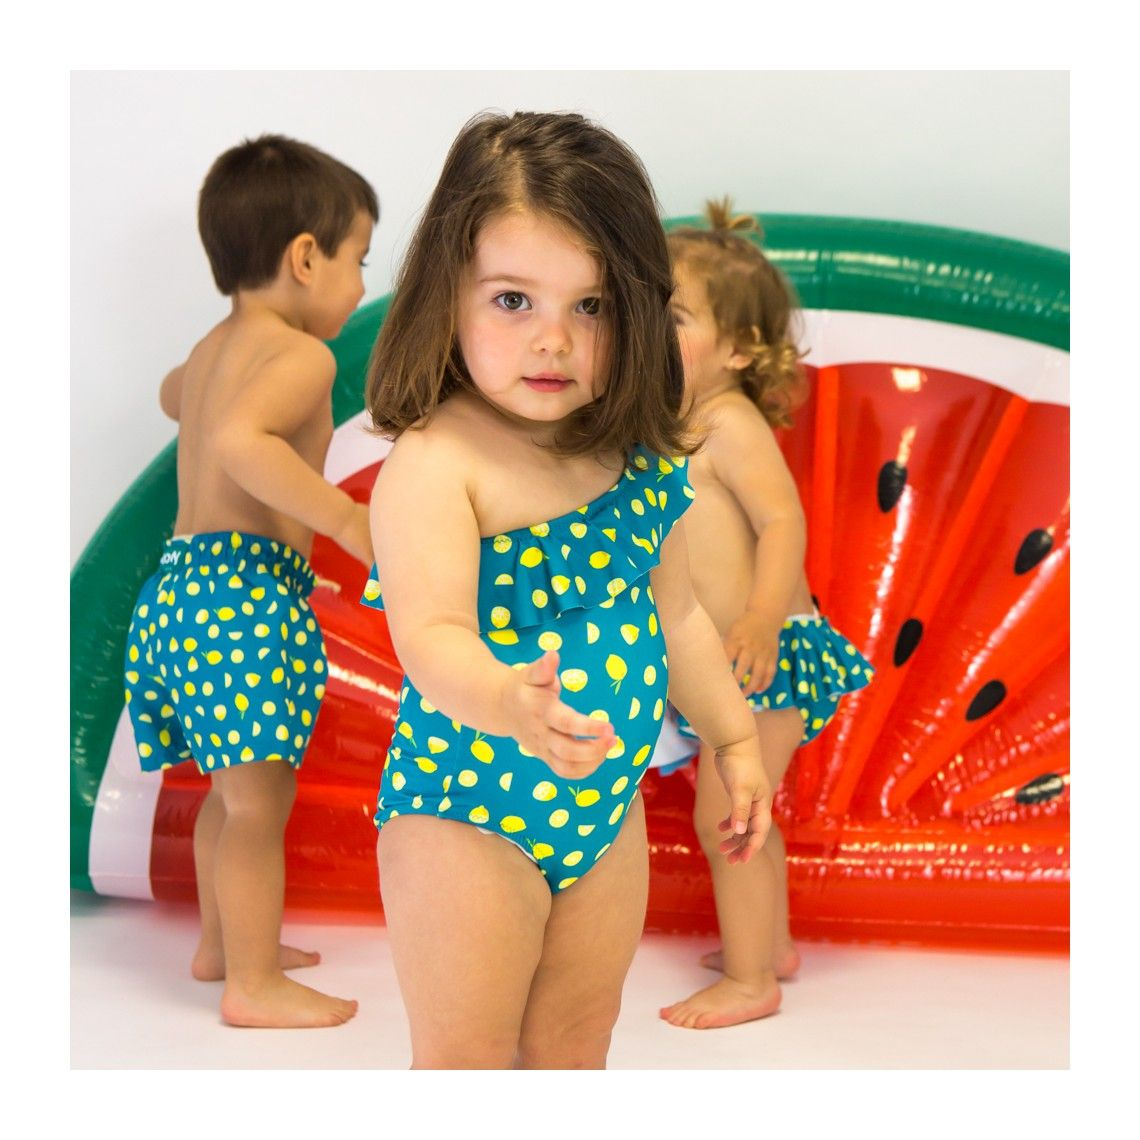 f6f0f6ed90 Girl Swimsuit Green Lemons 2 to 6 years - Ocoly | Ocoly Father and ...